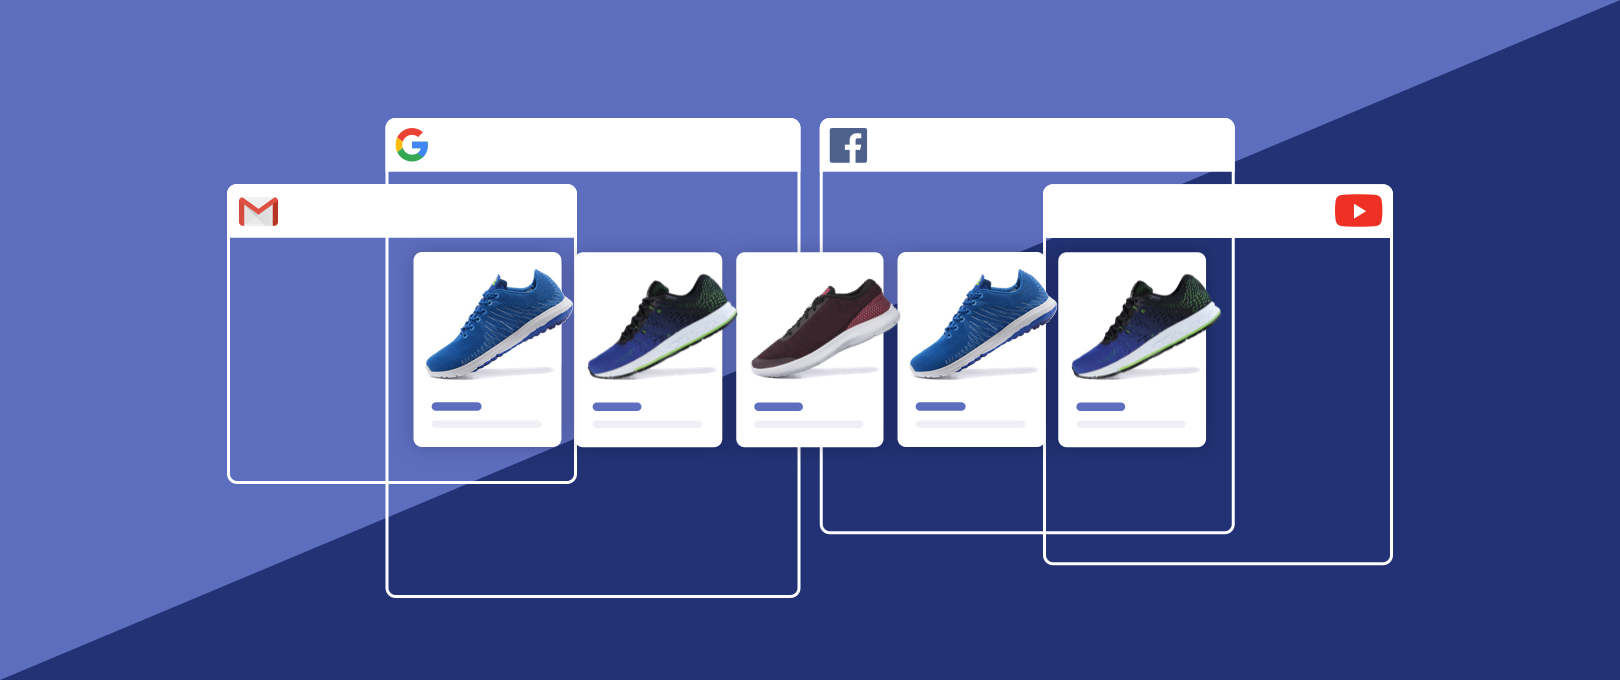 Use-Facebook-And-Google-Ads-To-Market-Business-In-Shopify-Part-1